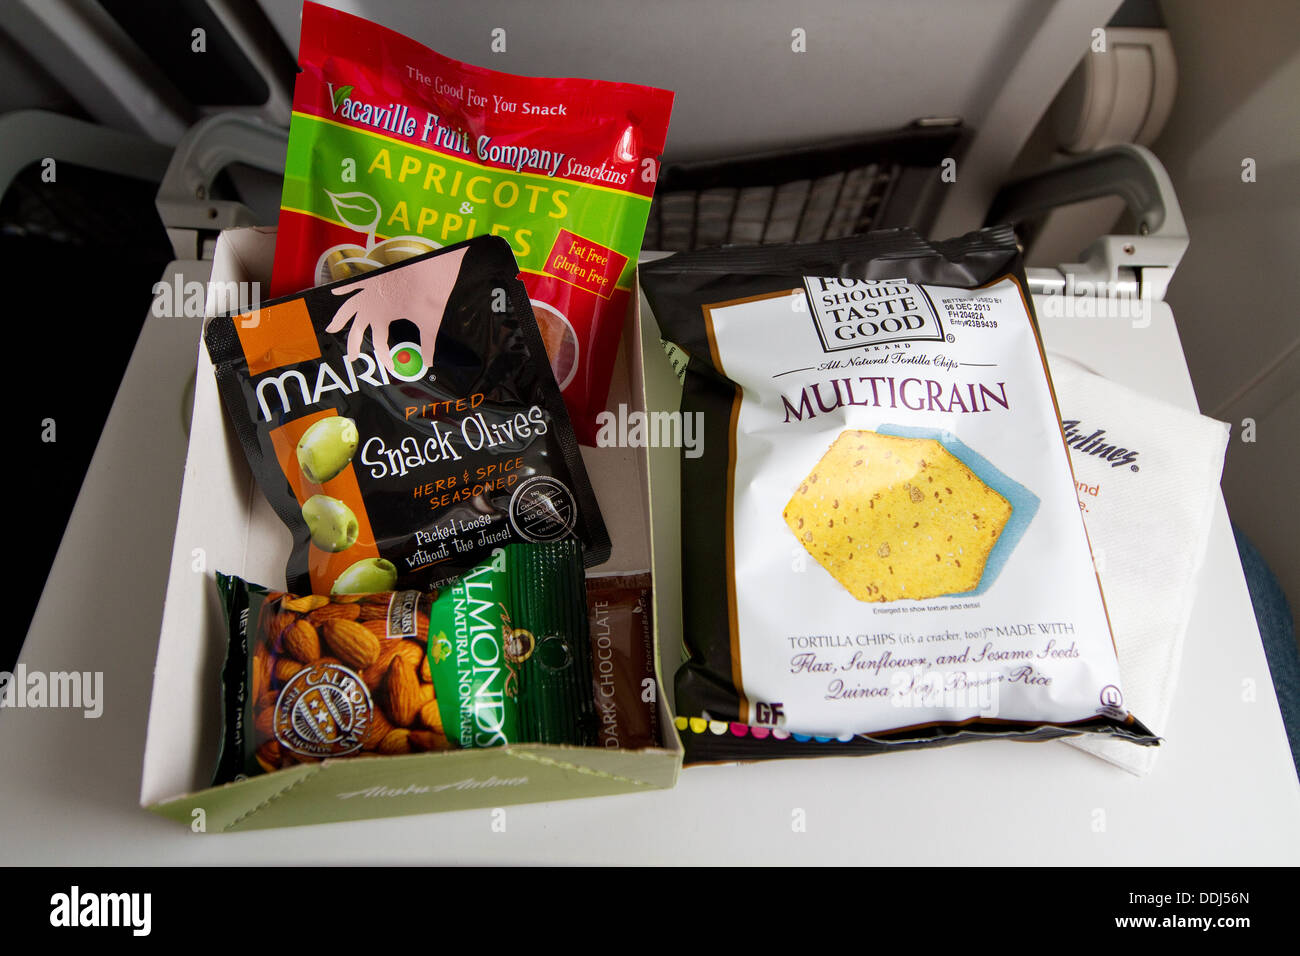 Gluten free airline food, airplane food, offered as an inflight meal. - Stock Image